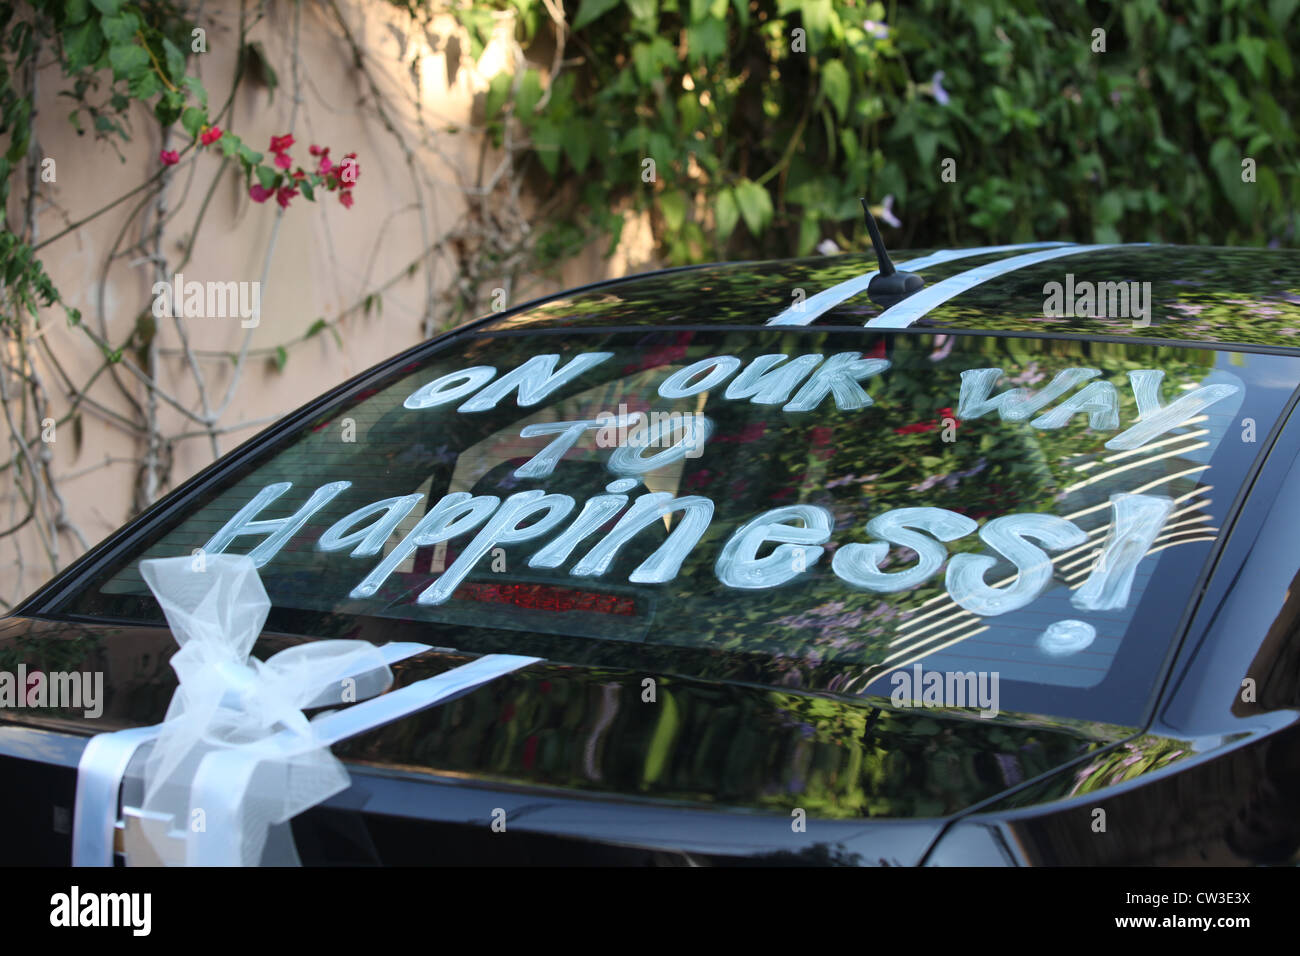 Just Married - On our way to Happiness - Stock Image